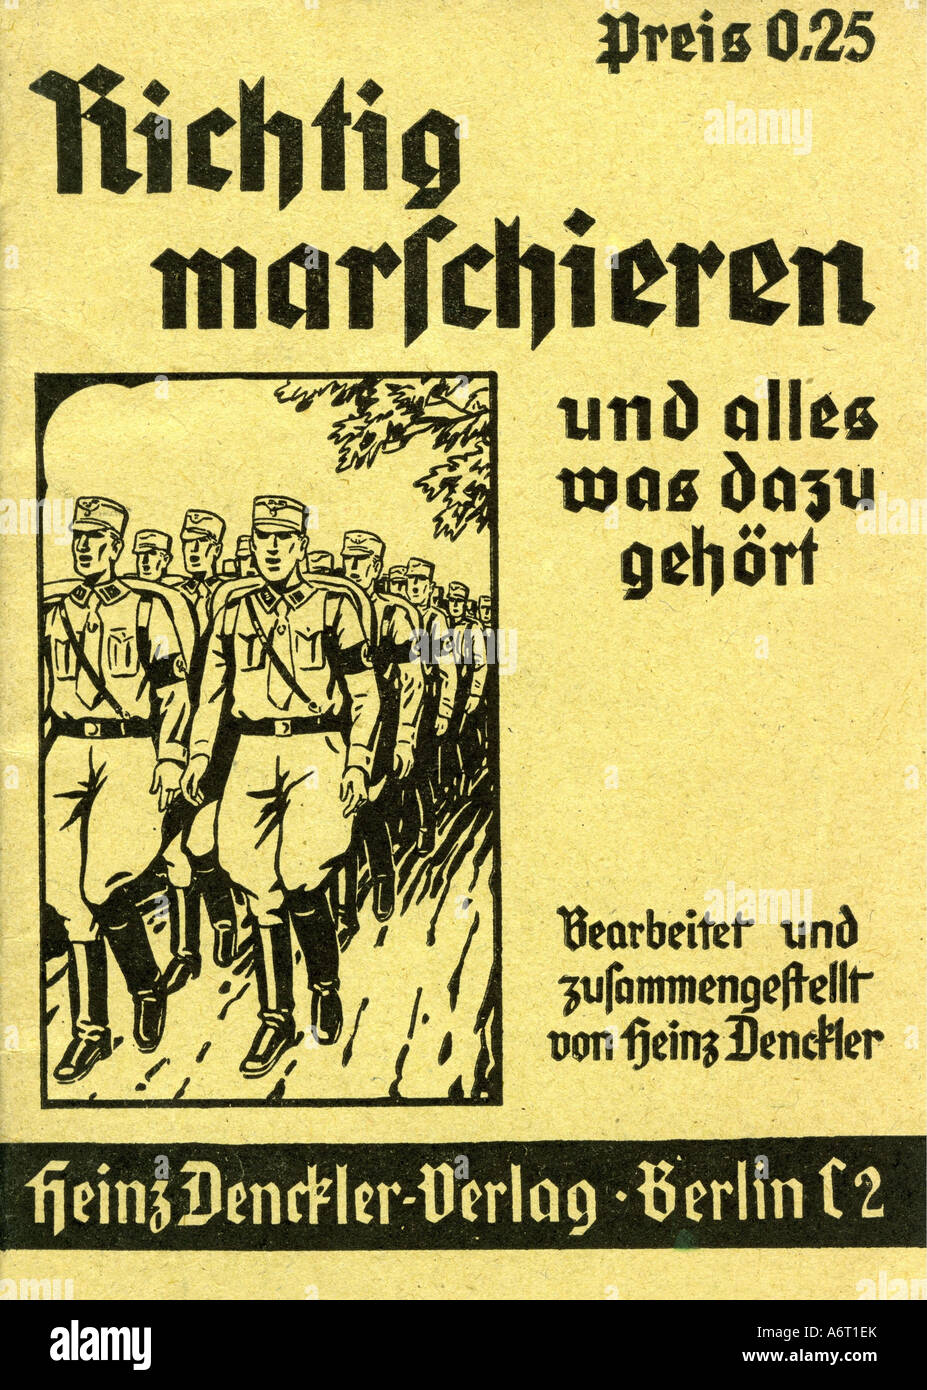 national socialism/nazism, organisations, Sturmabteilungen (SA), guide for correct marching, by Heinz Denckler, - Stock Image